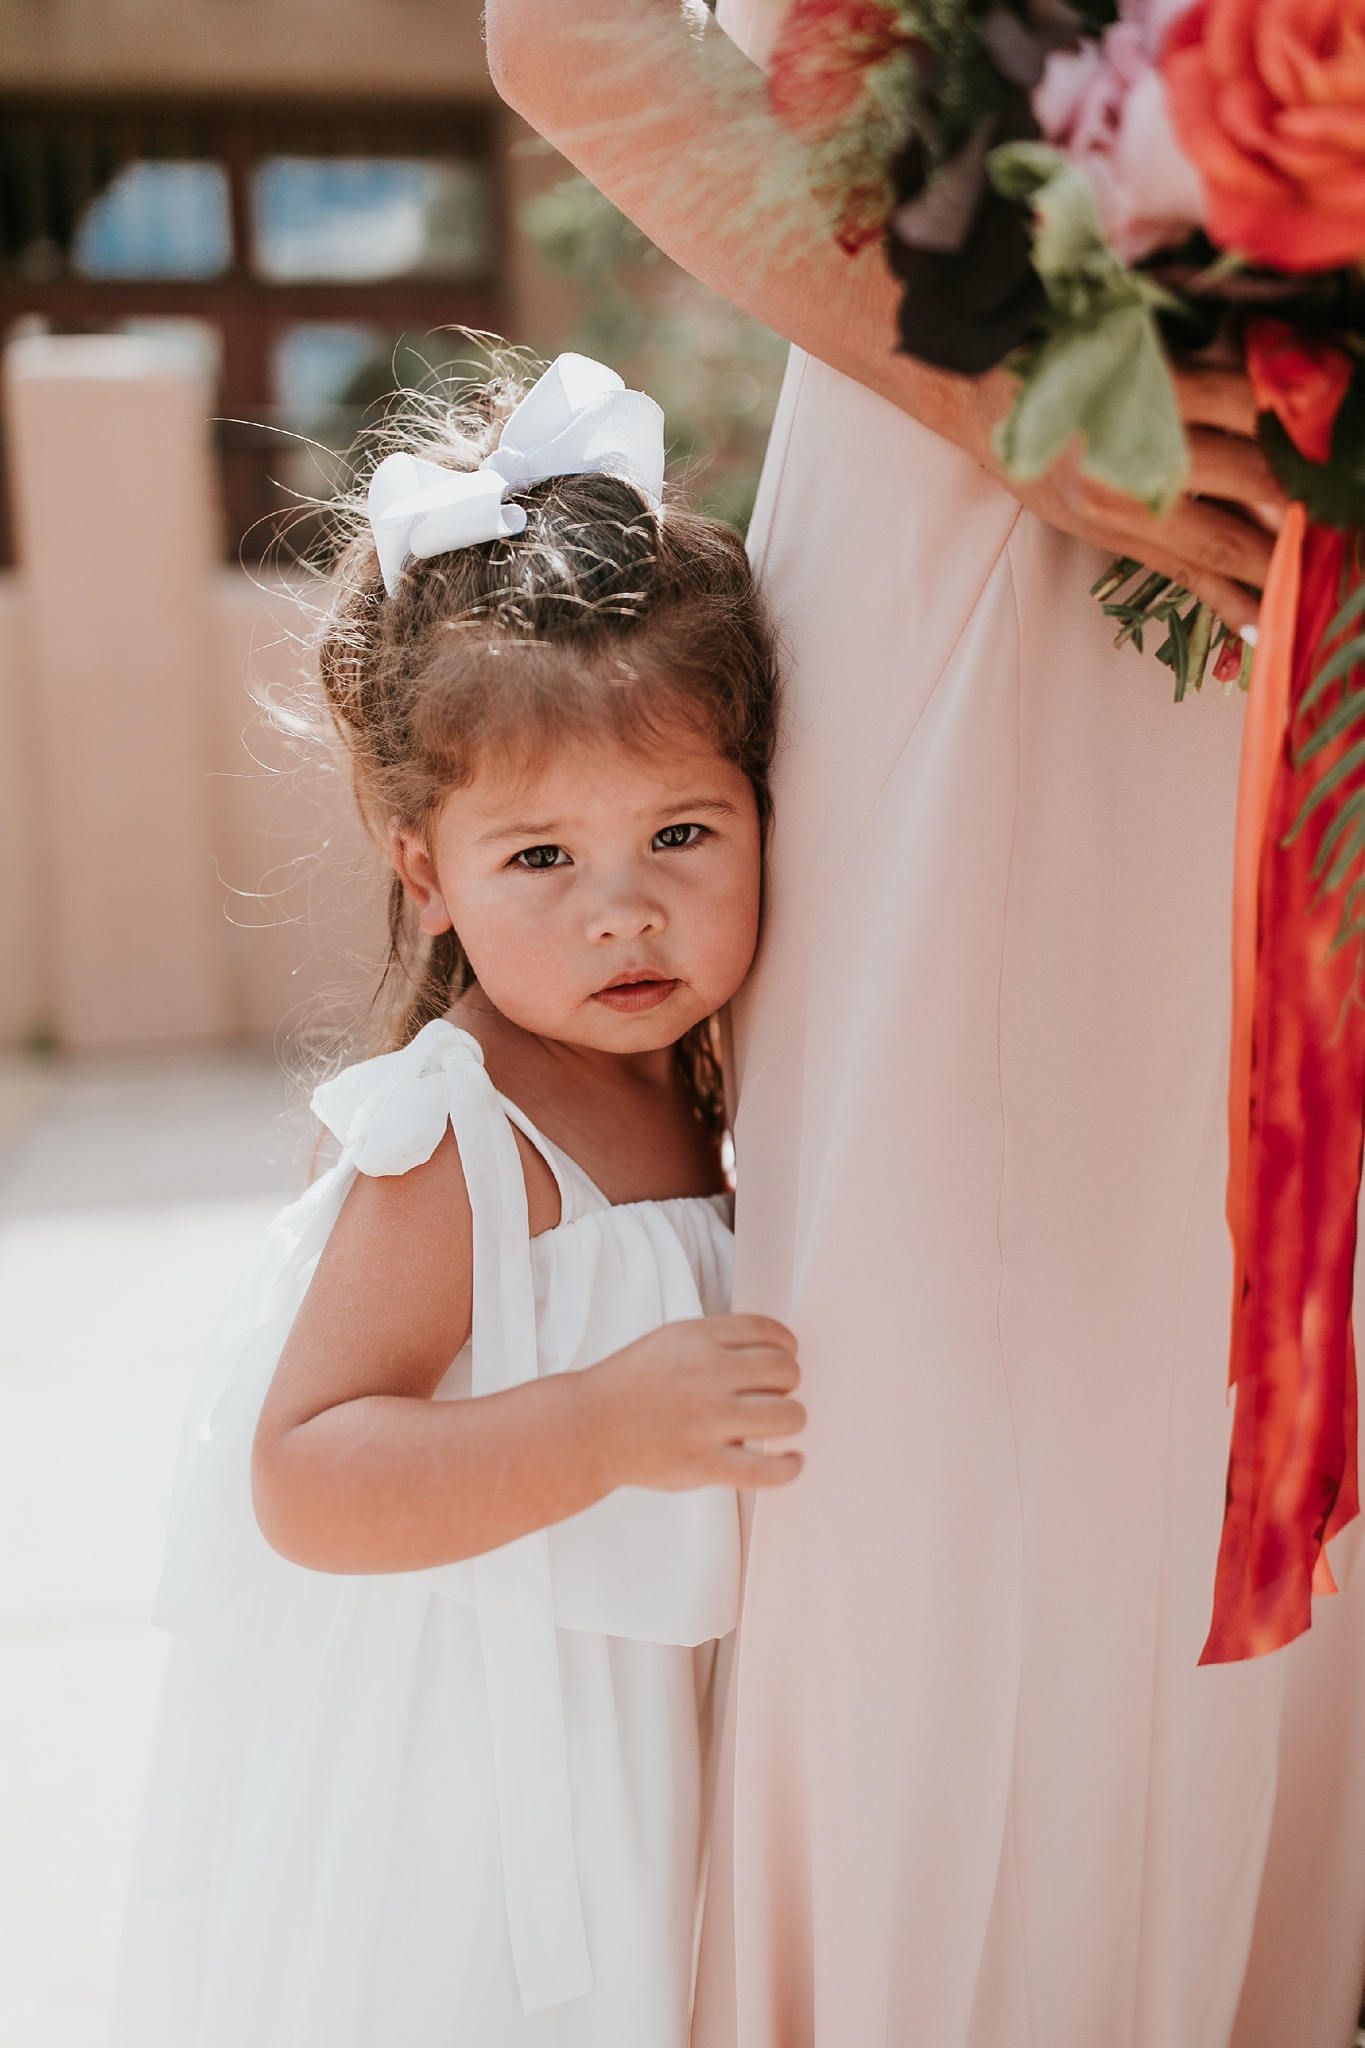 Alicia+lucia+photography+-+albuquerque+wedding+photographer+-+santa+fe+wedding+photography+-+new+mexico+wedding+photographer+-+new+mexico+wedding+-+flower+girl+-+wedding+flower+girl_0042.jpg